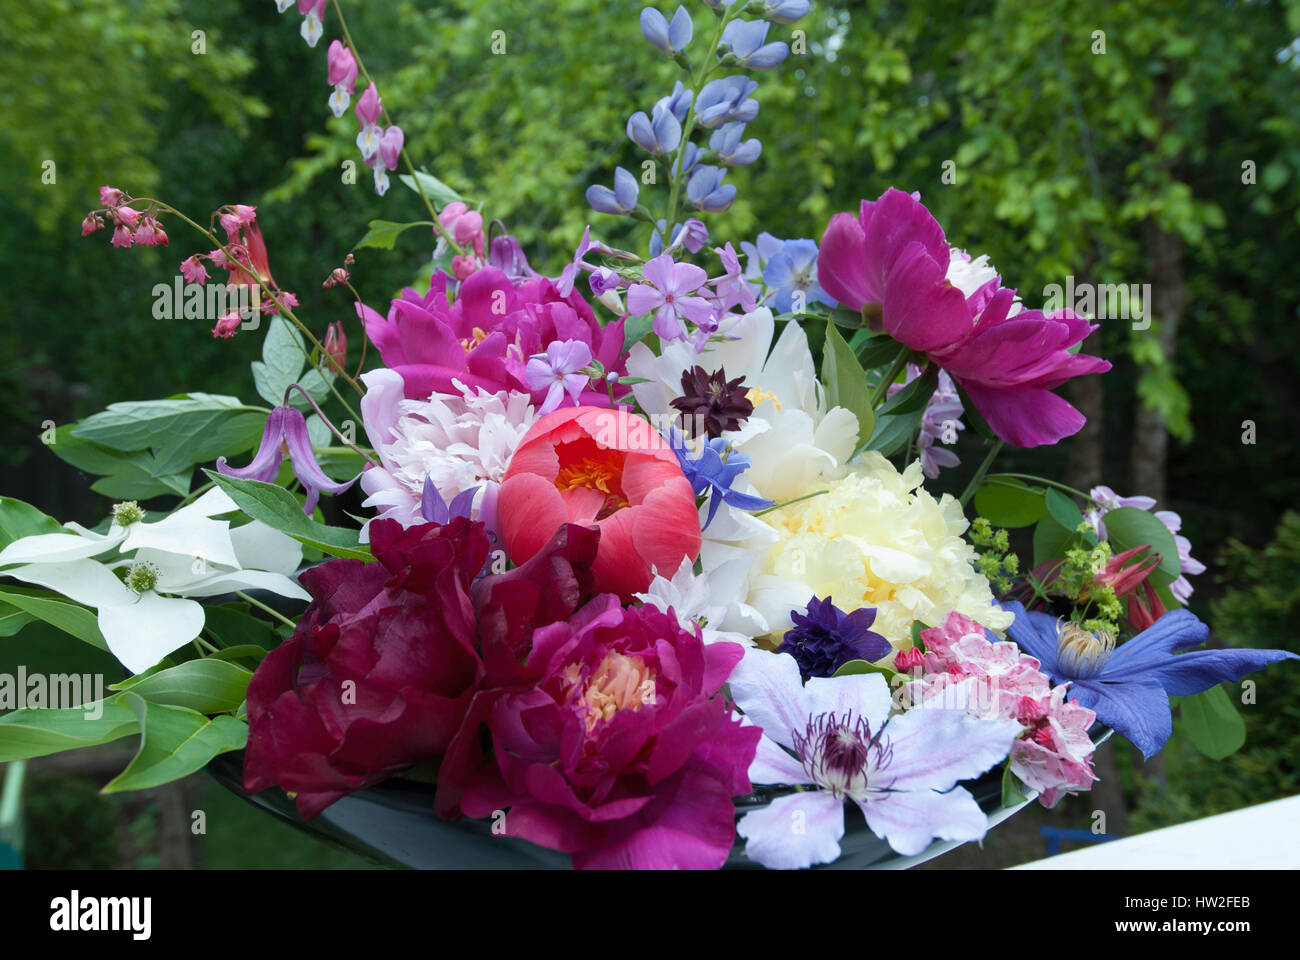 Bouquets of may flowers peonies baptisia clematis bleeding heart bouquets of may flowers peonies baptisia clematis bleeding heart izmirmasajfo